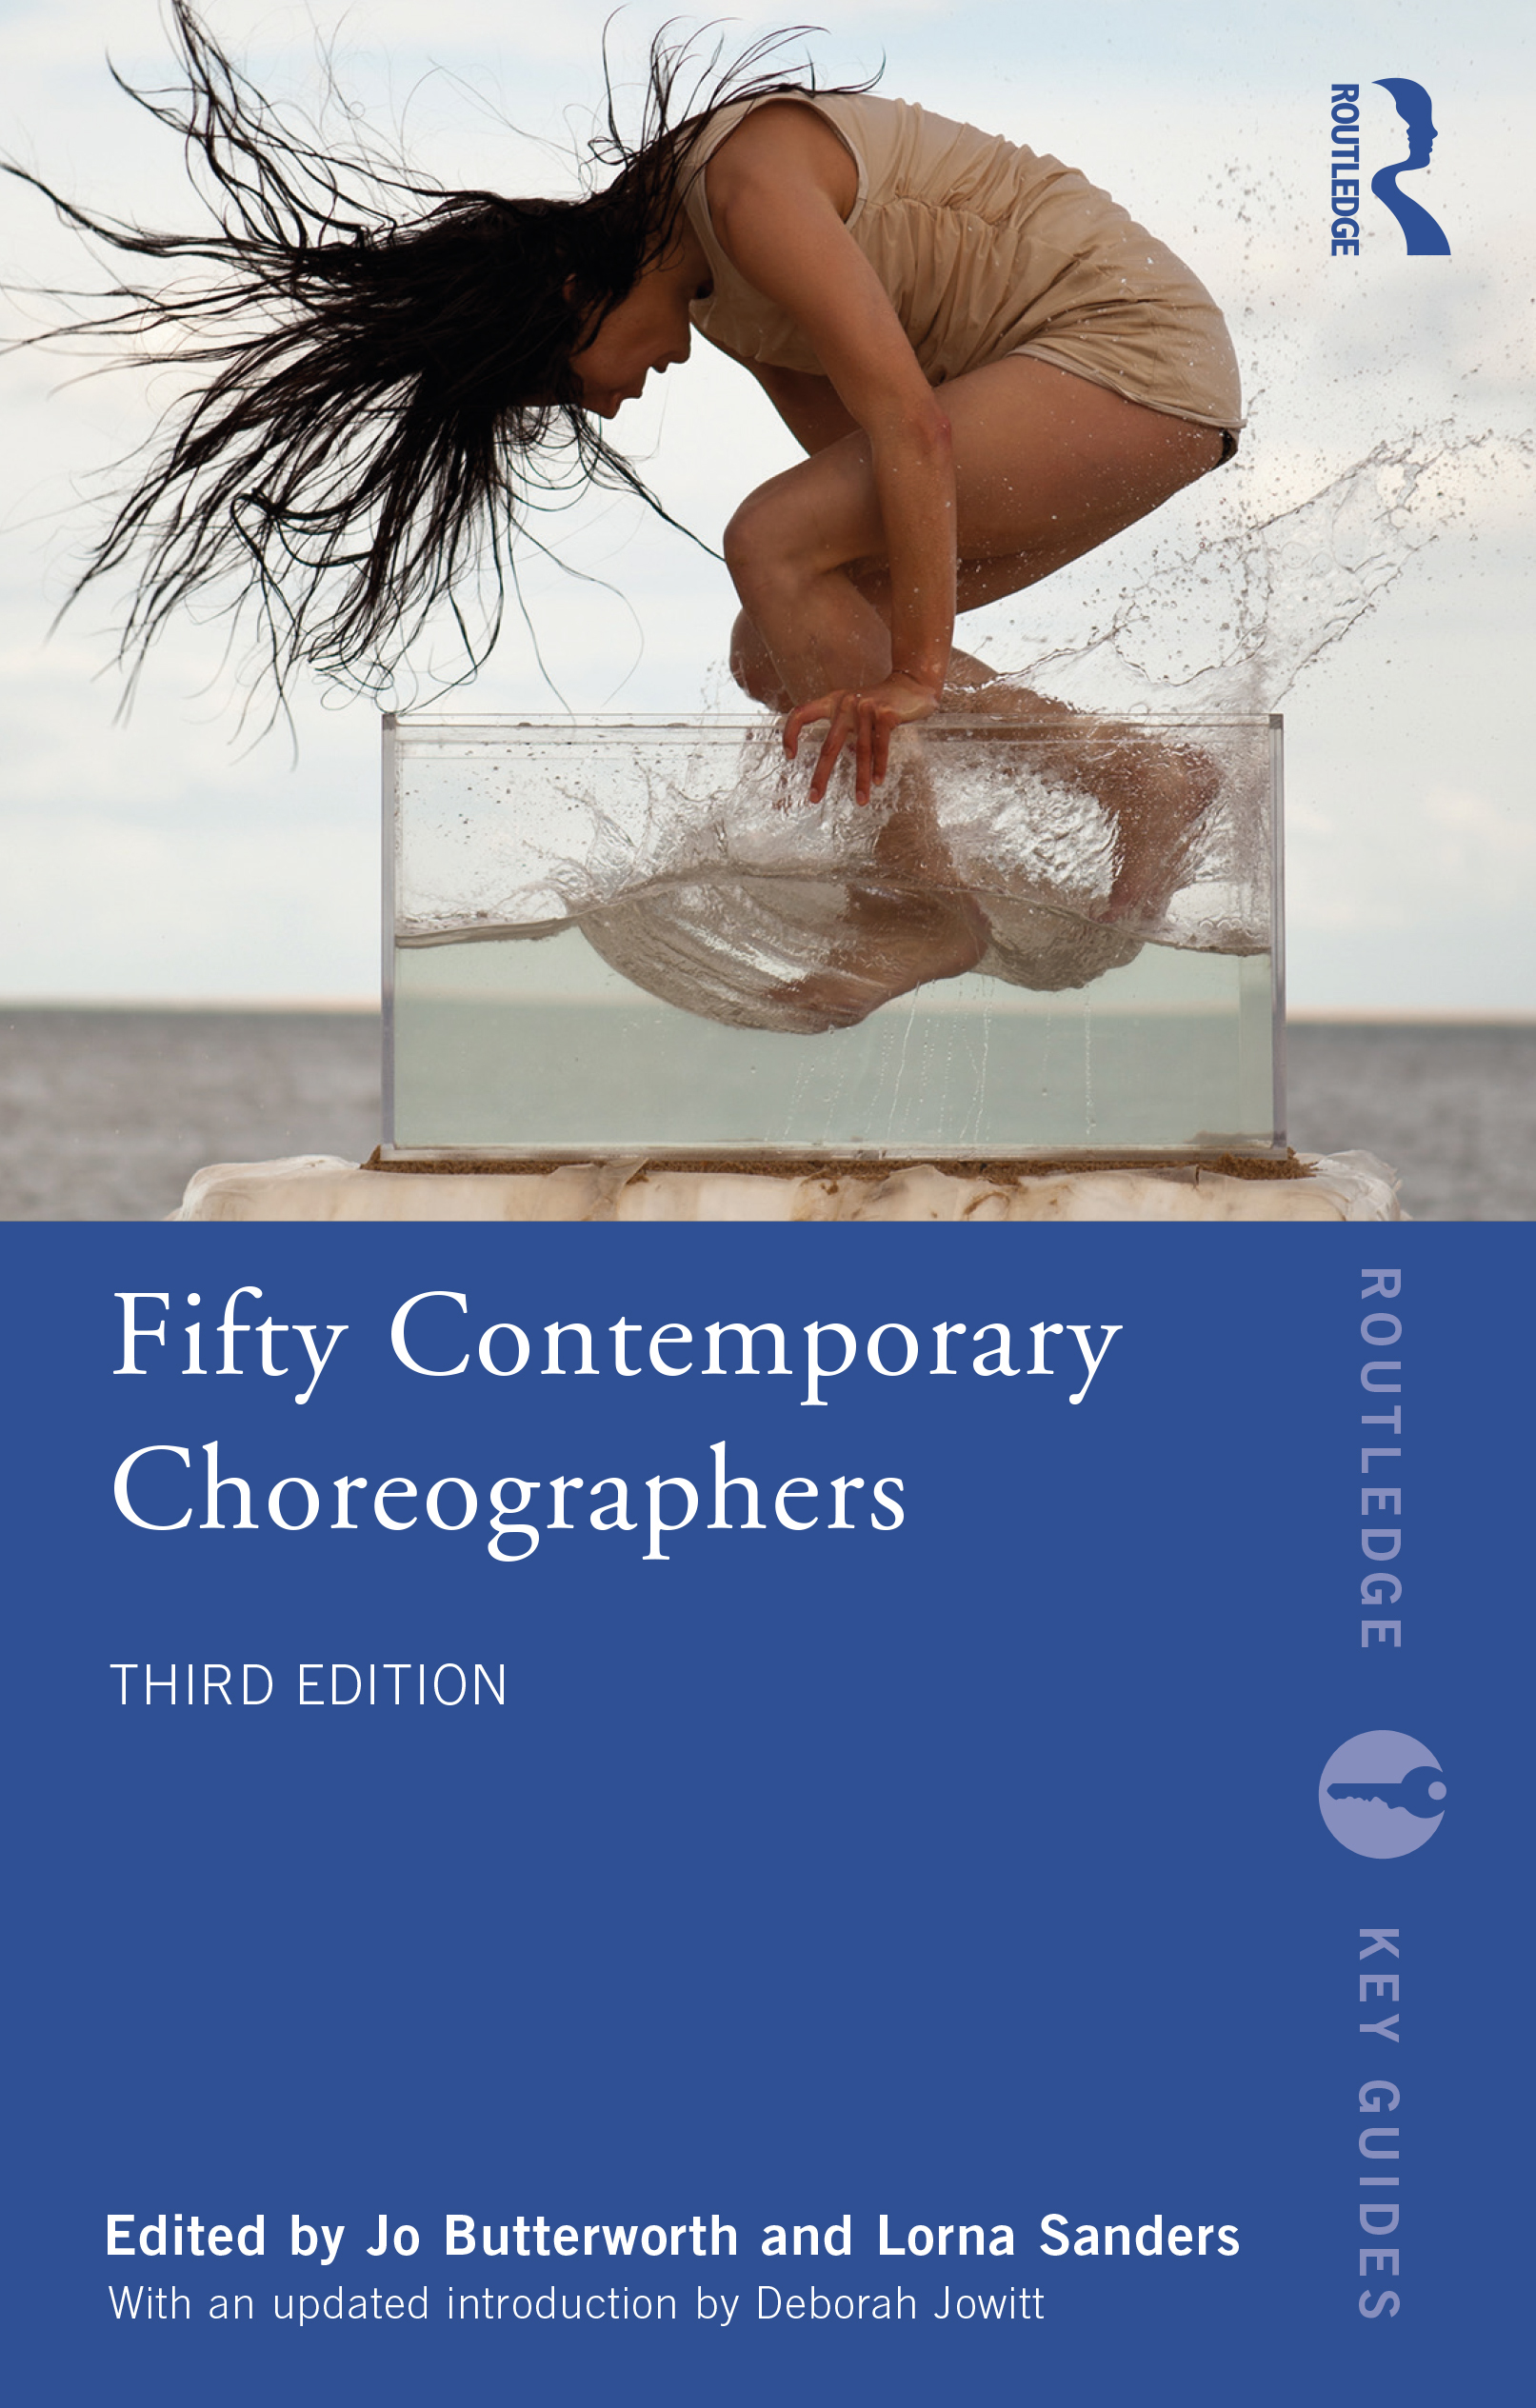 Fifty Contemporary Choreographers - 3rd Edition - Jo Butterworth - Lo